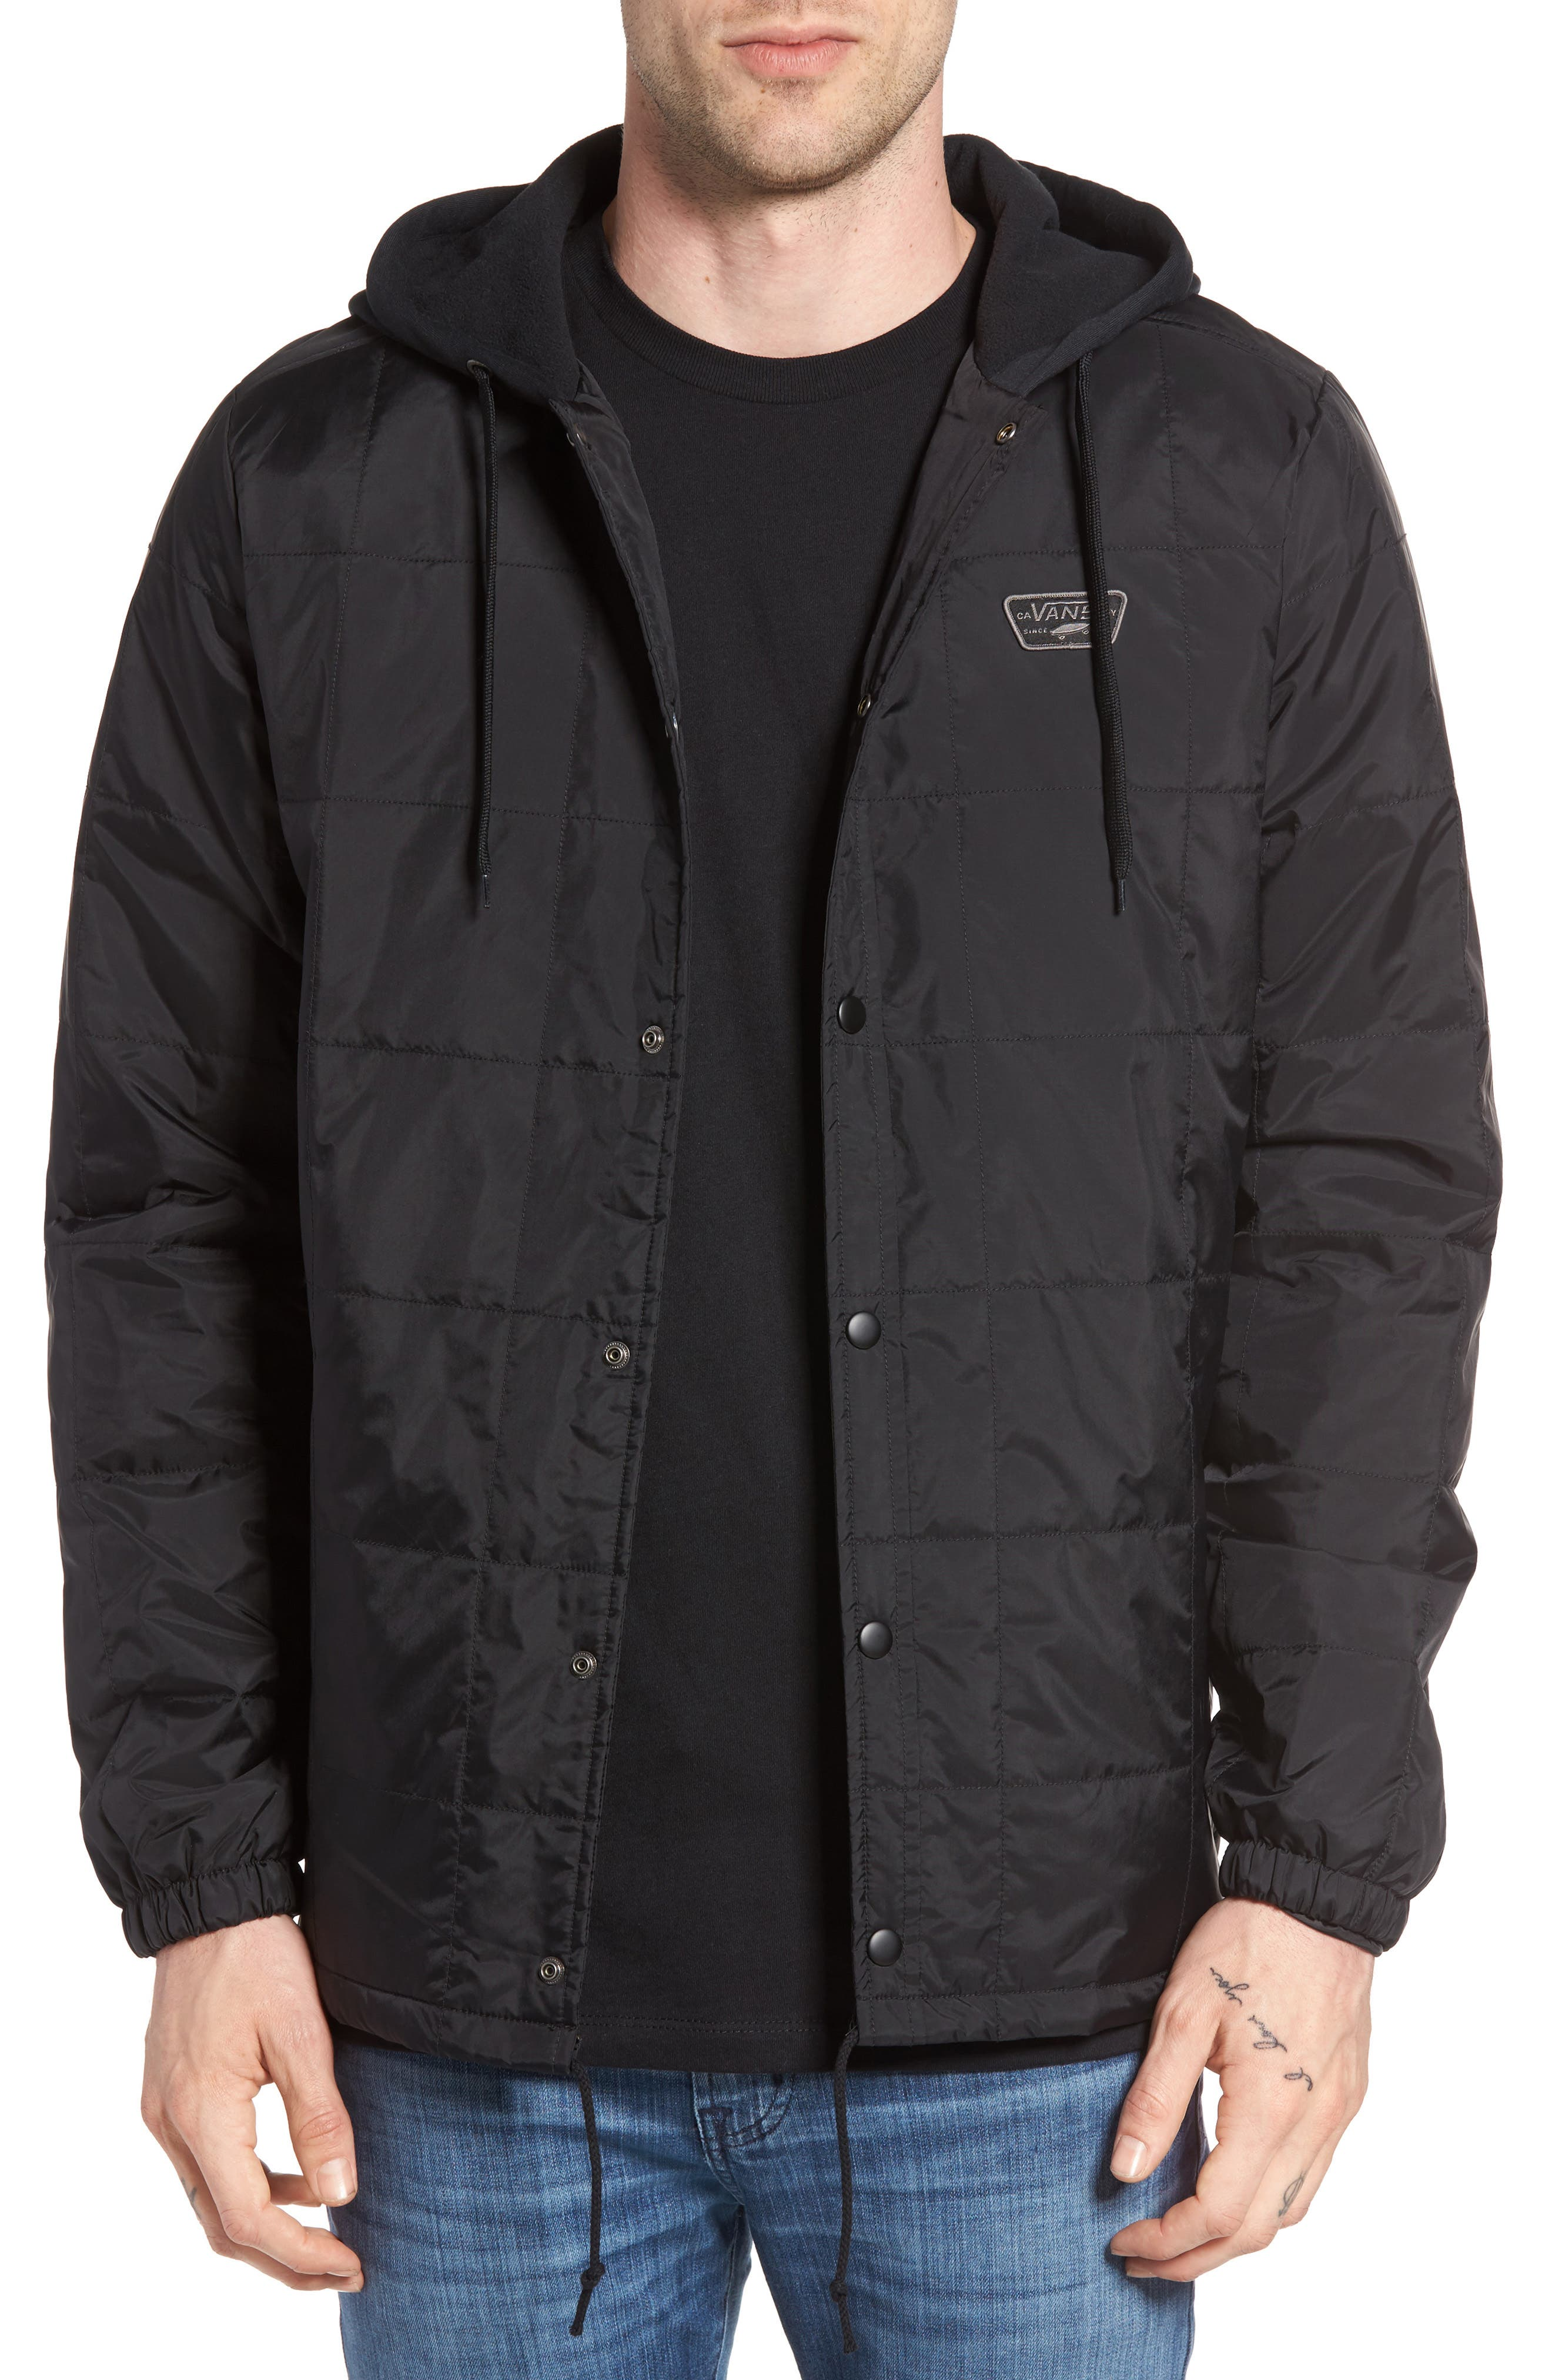 Santiago III Water Repellent Quilted Jacket,                             Main thumbnail 1, color,                             001